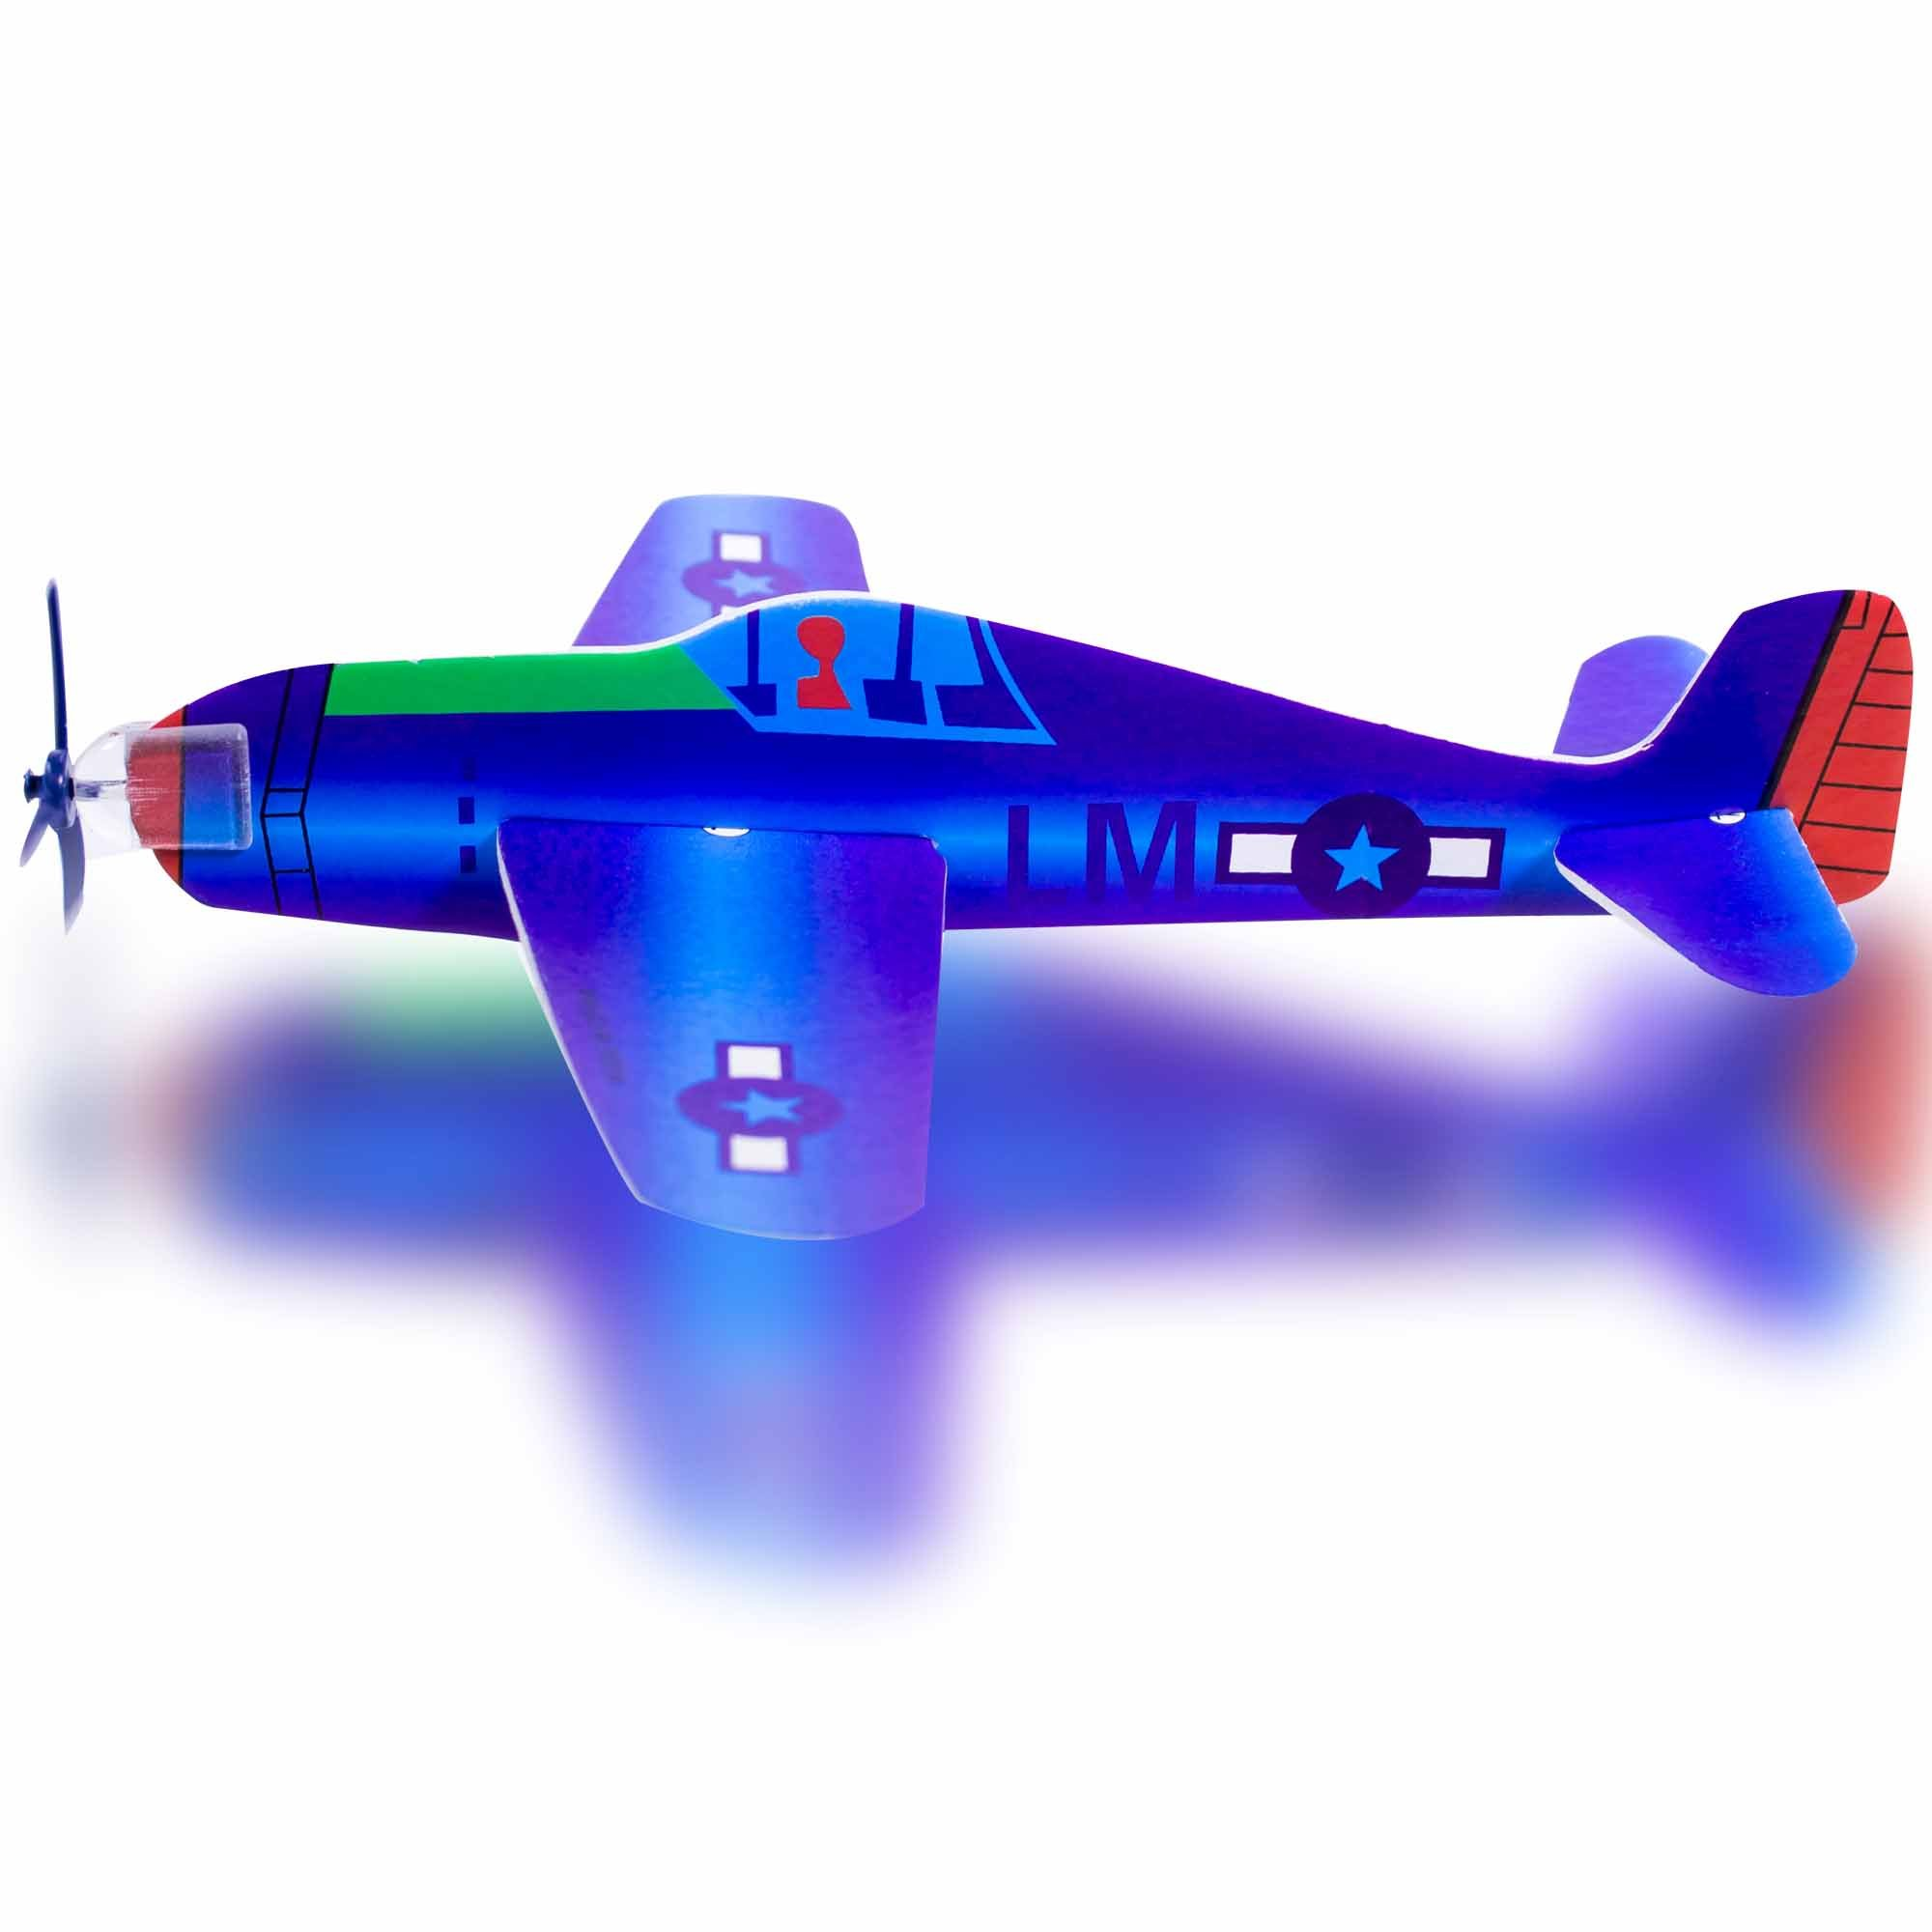 Windy City Novelties Flying Airplane Toy for kids - Outdoor Glider Plane Indoor / Outdoor Game (Set of 48)